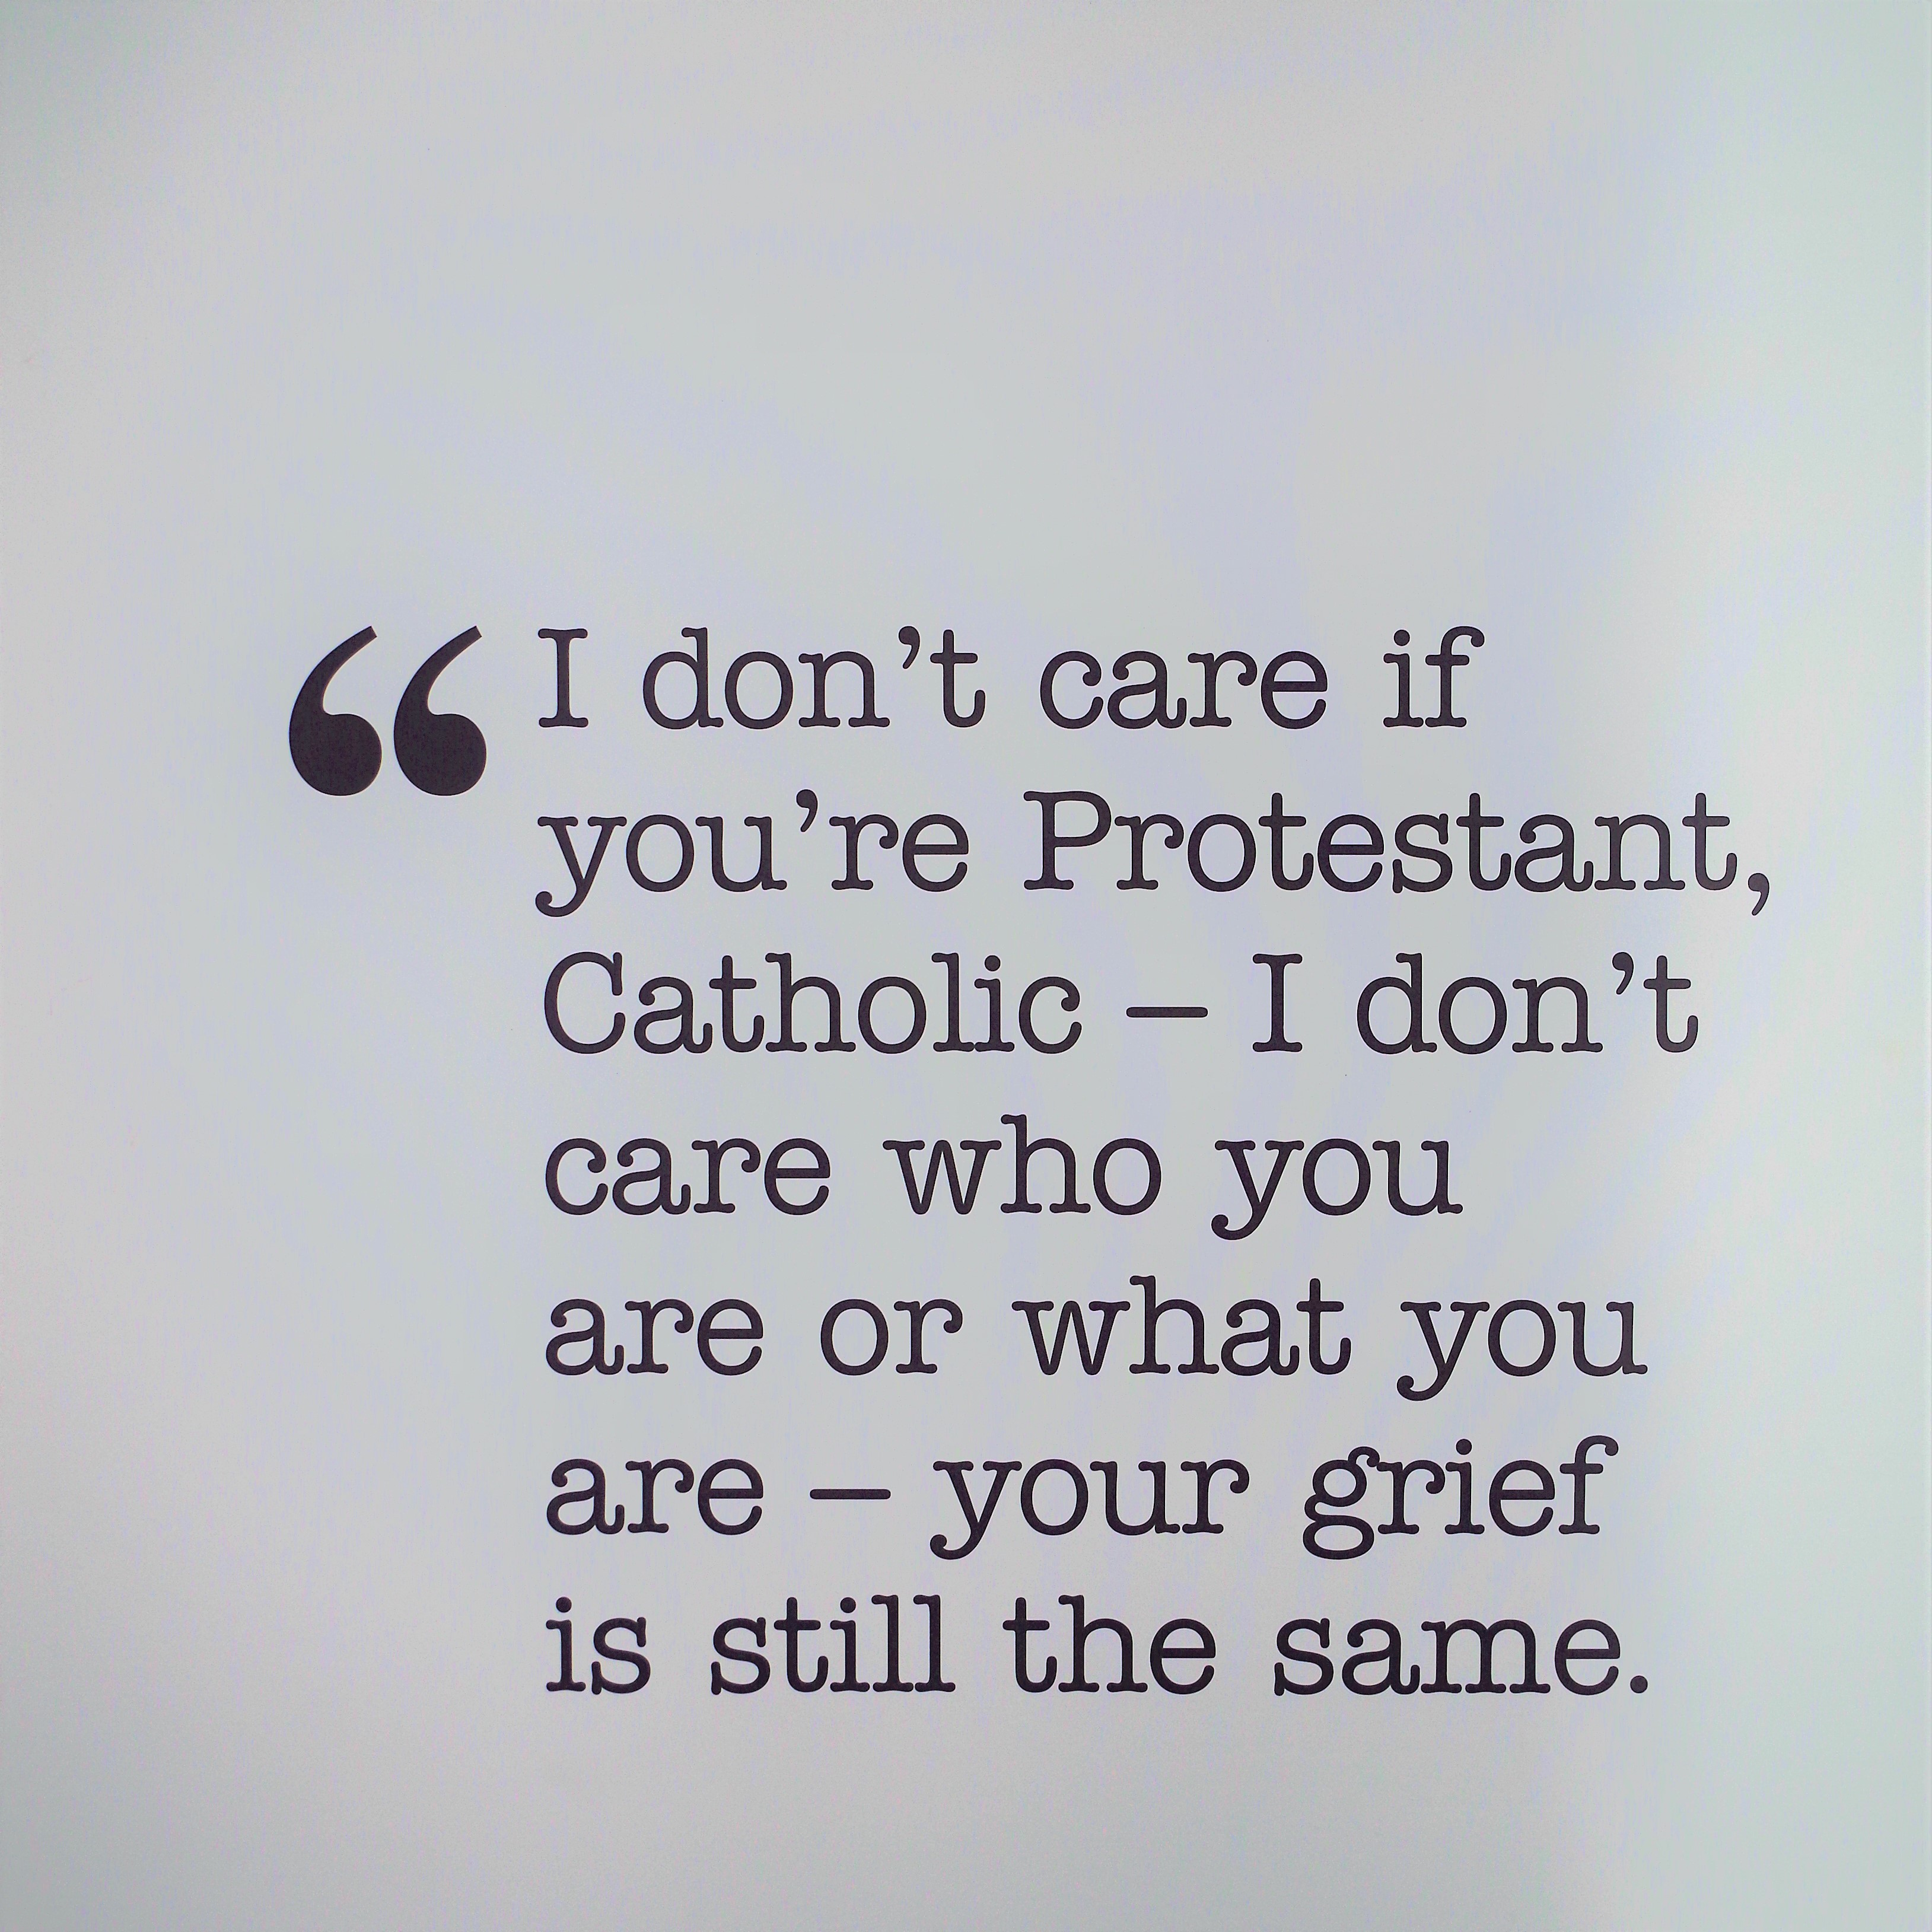 What to say to a widow when grieving